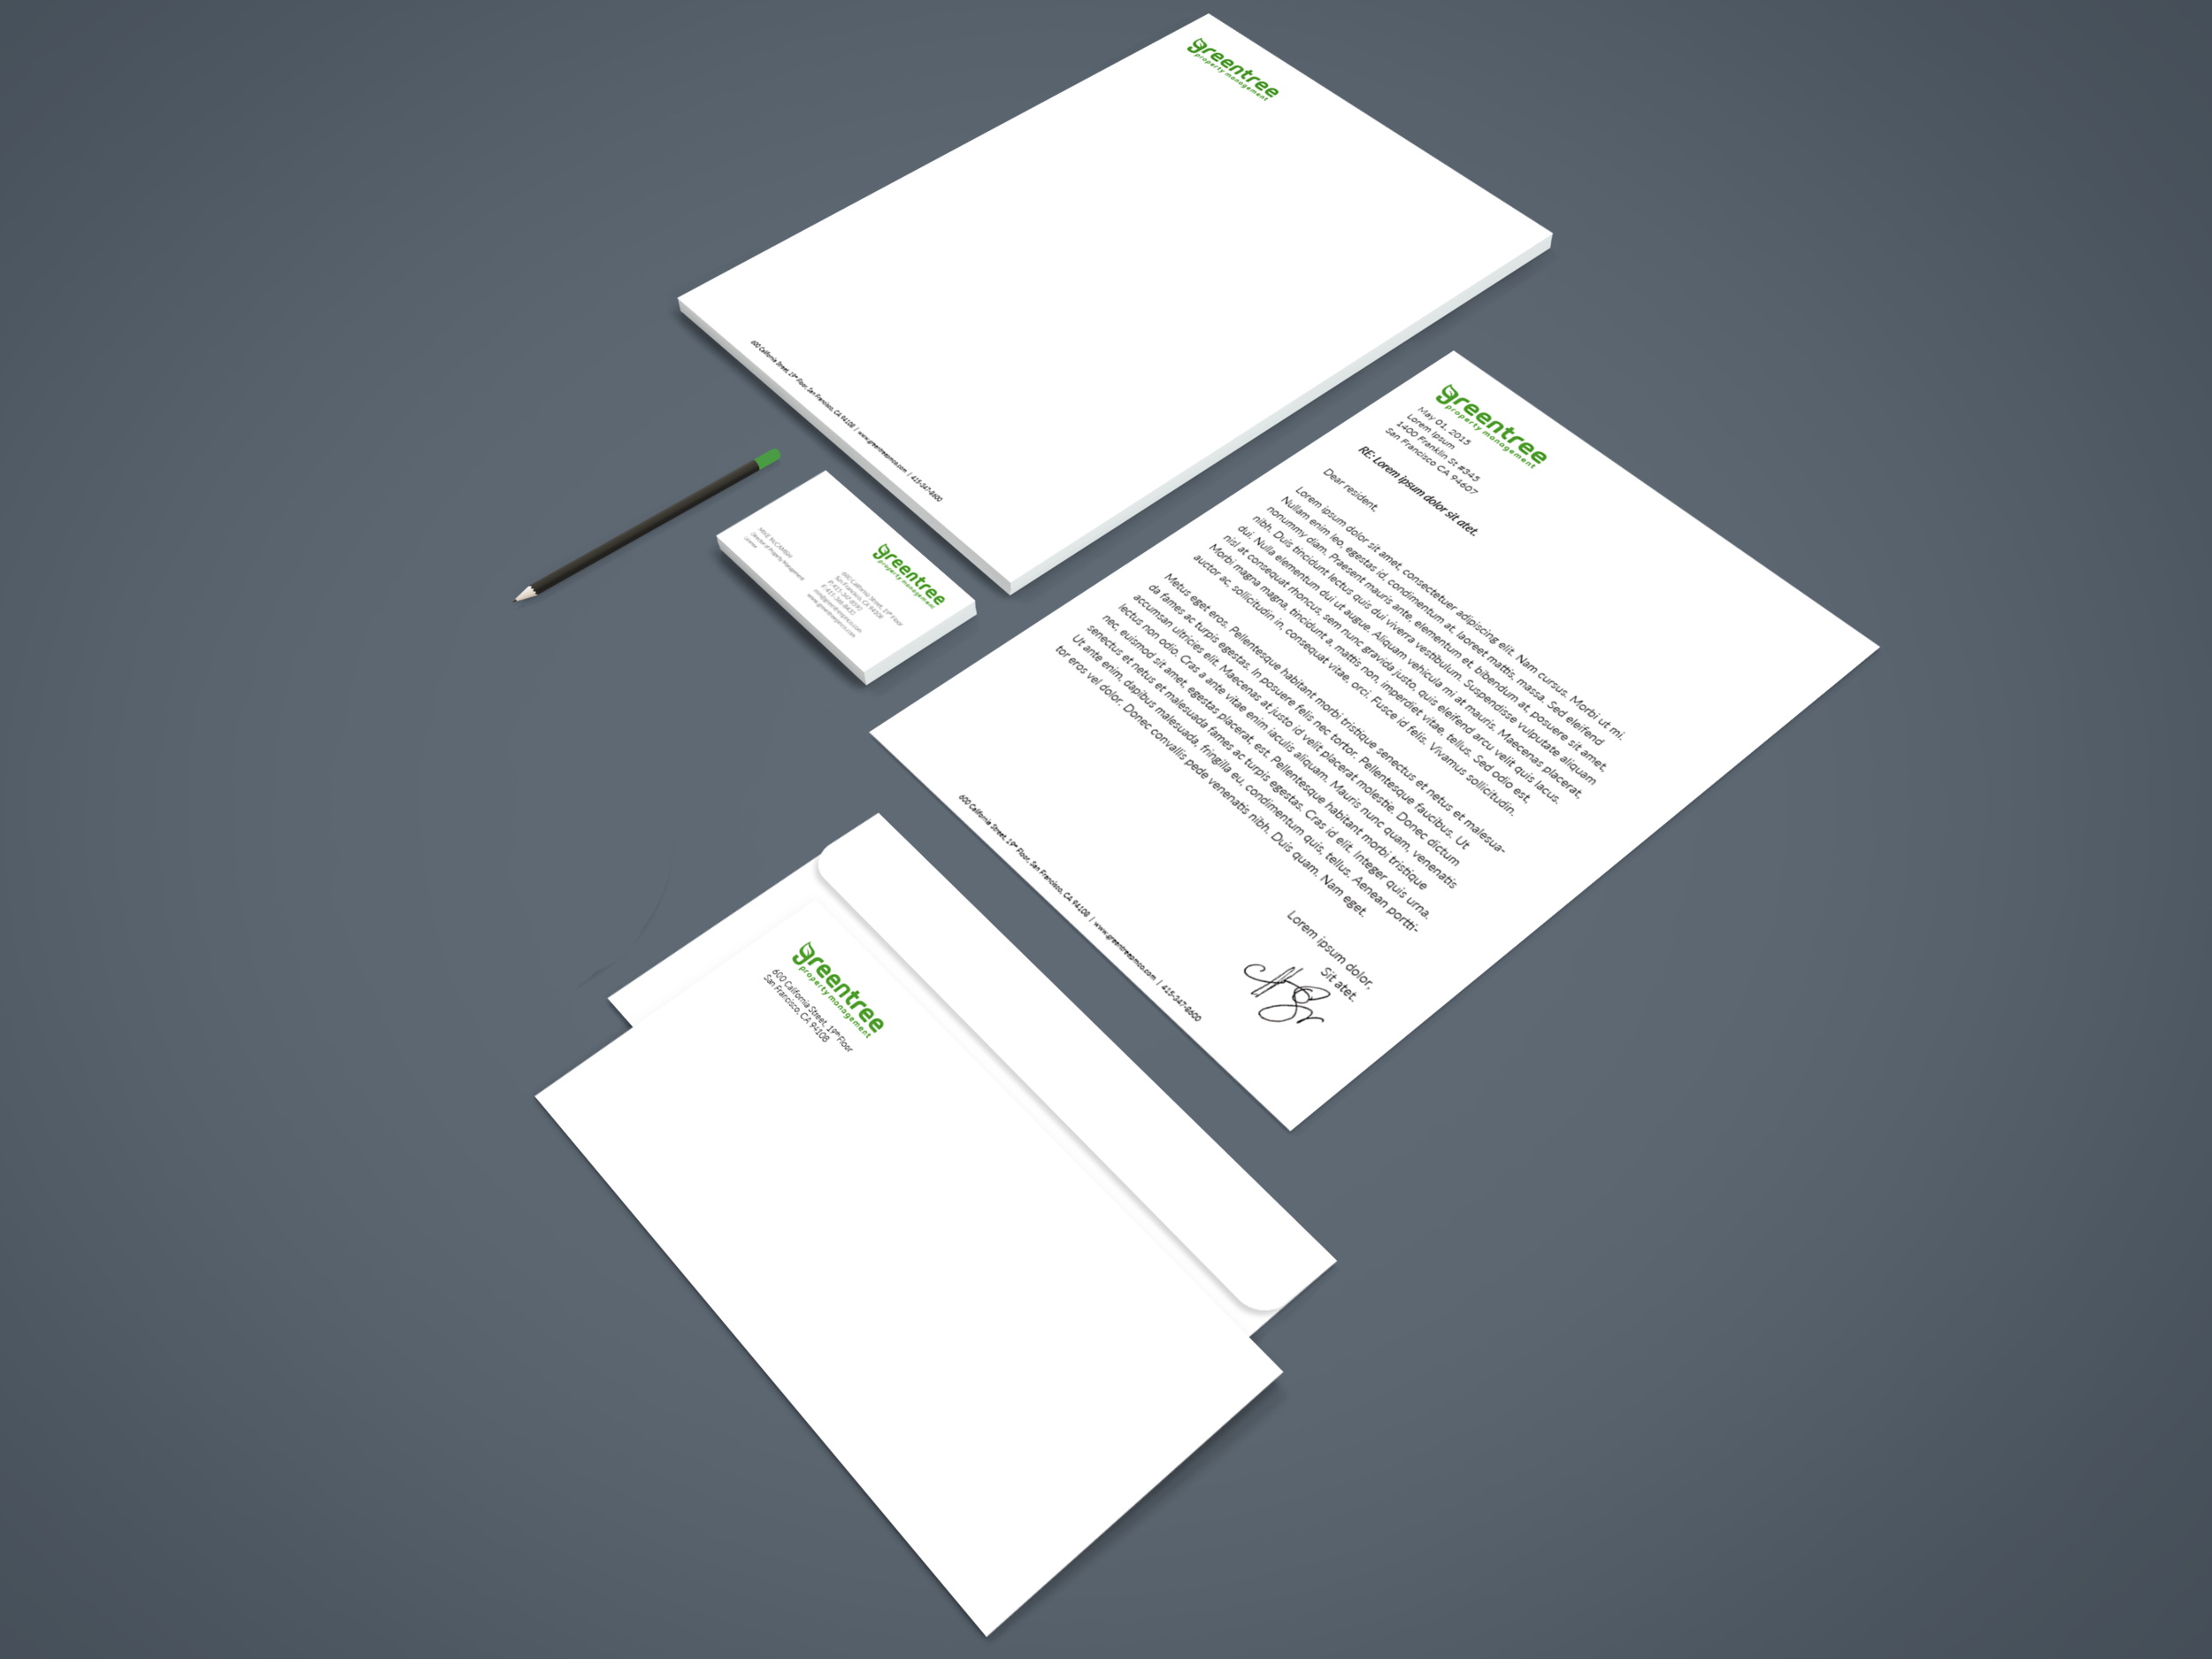 greentree_collateral_mockup.png